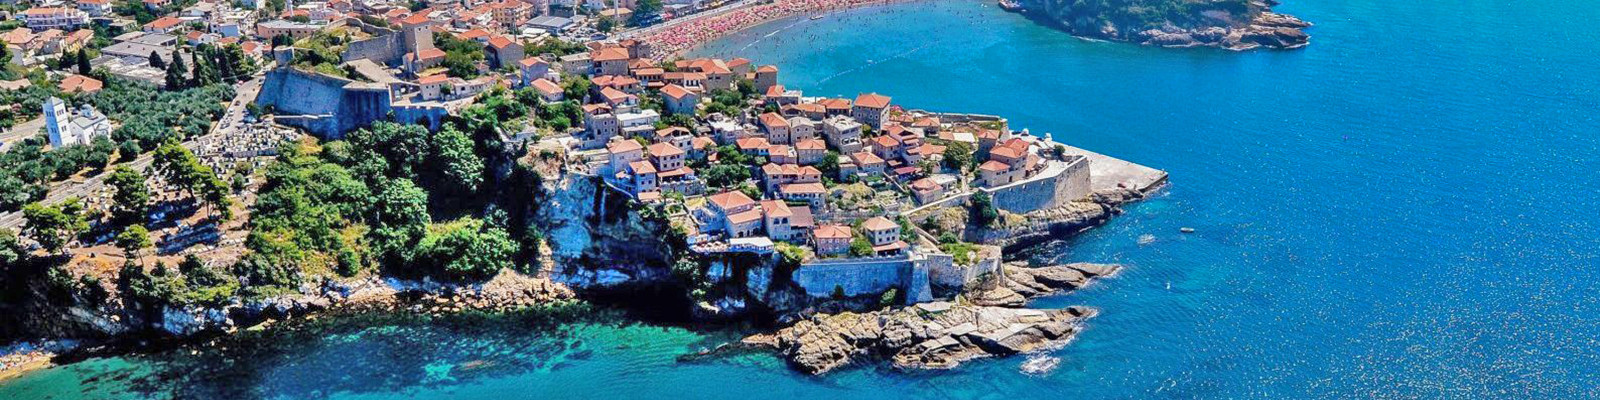 History of Ulcinj